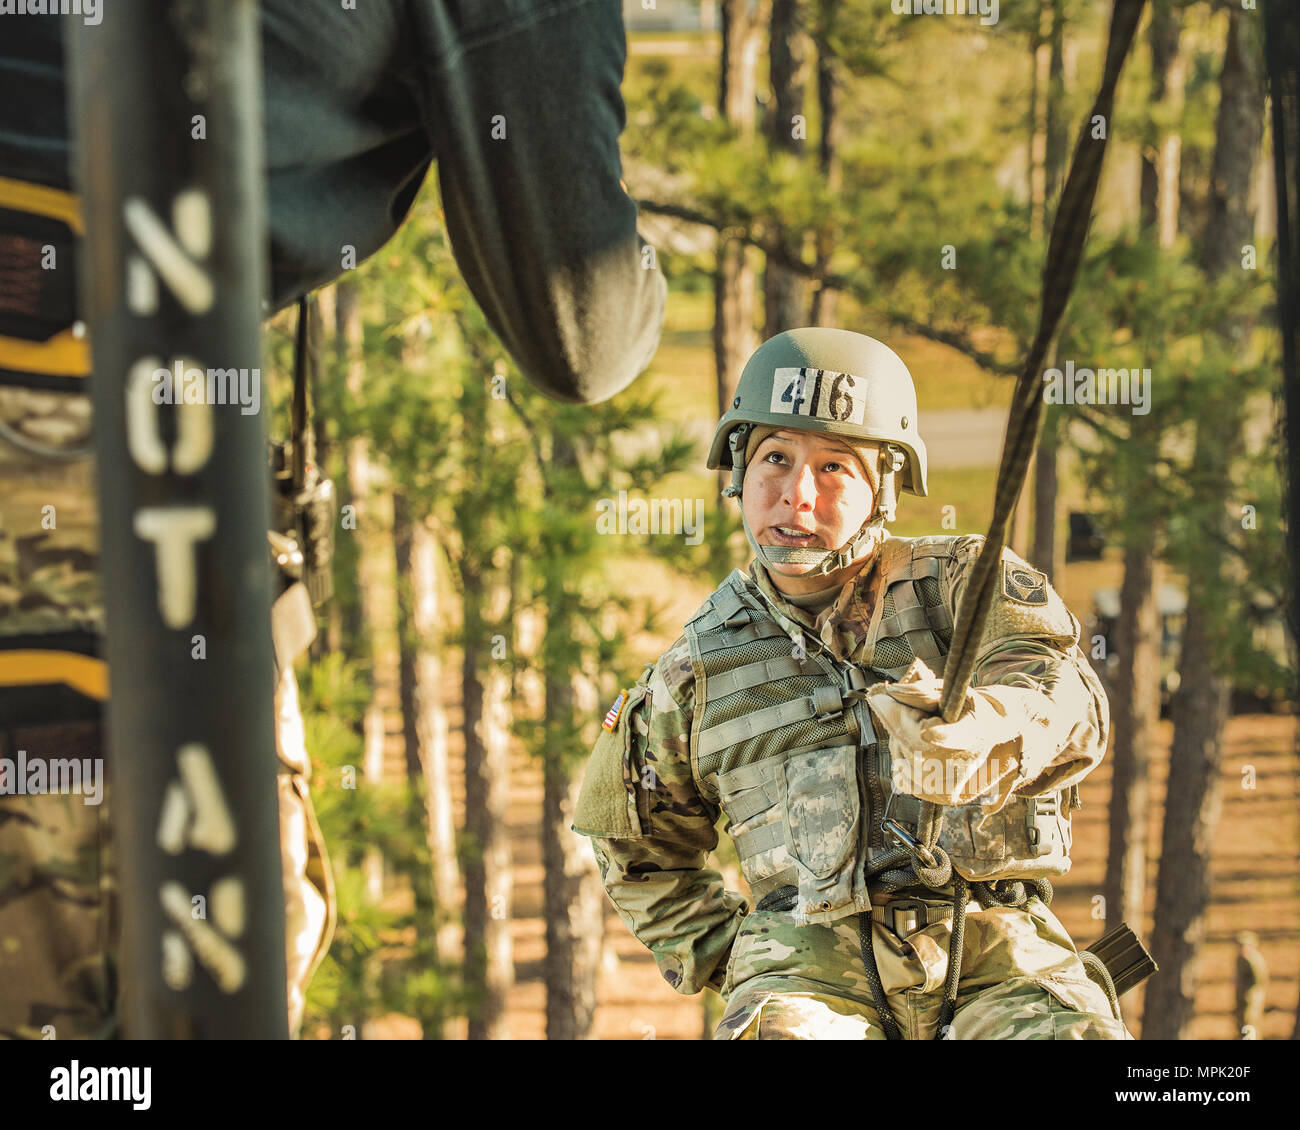 A Soldier prepares to rapel down a tower at Camp Blanding Joint Training Center as part of the AIr Assault Course at Camp Blanding Joint Training Center. - Stock Image